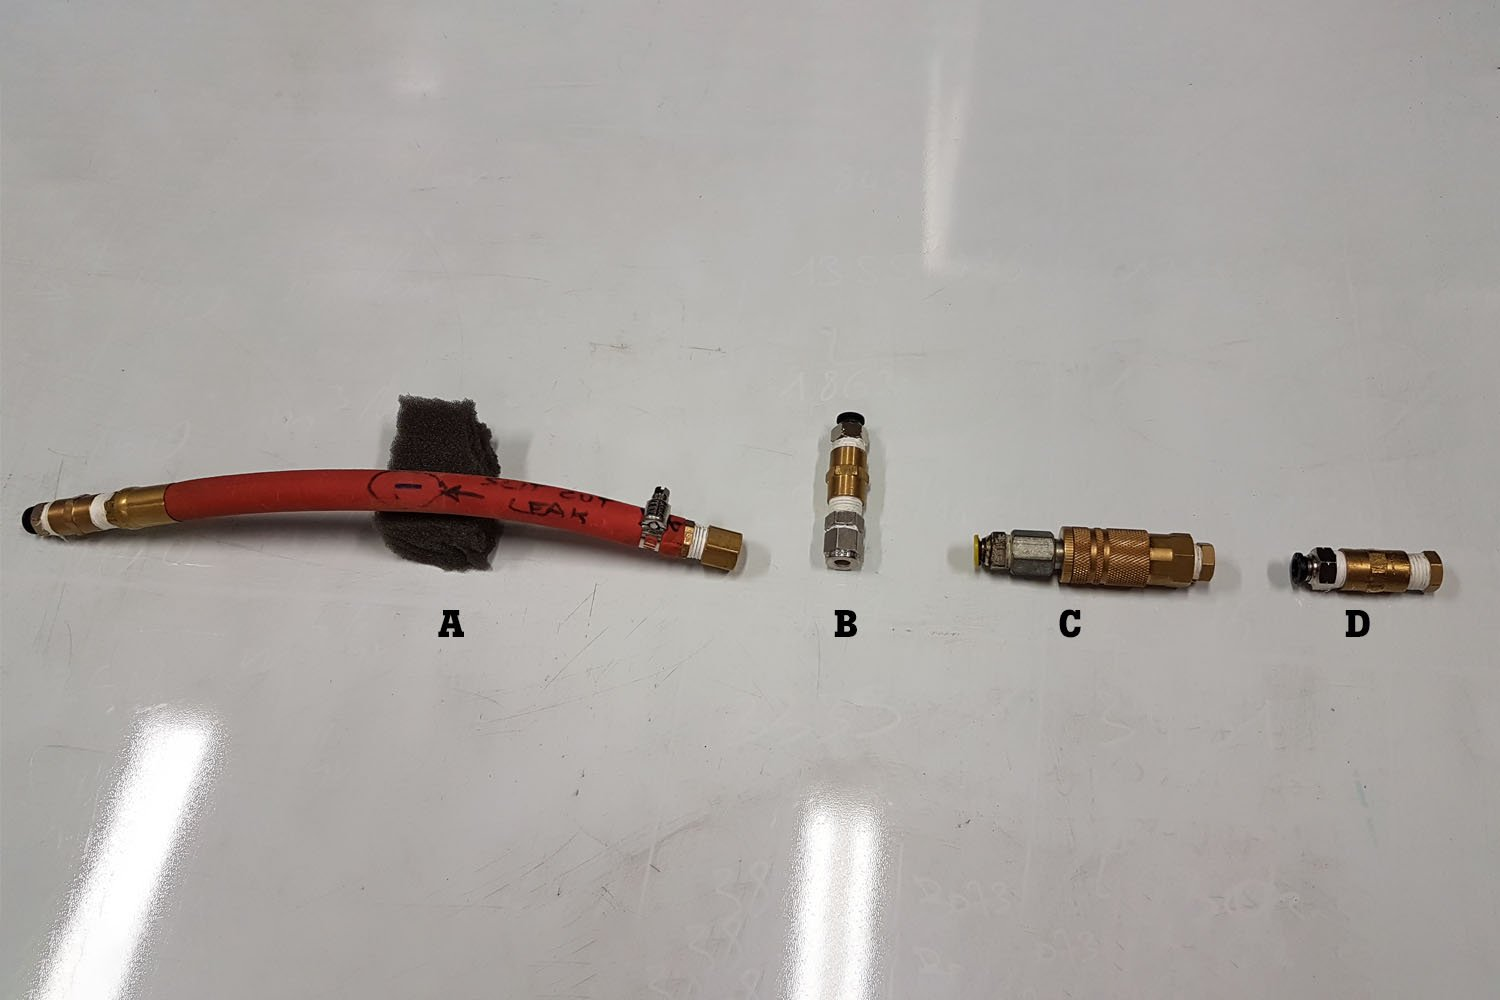 Different types of compressed air leaks